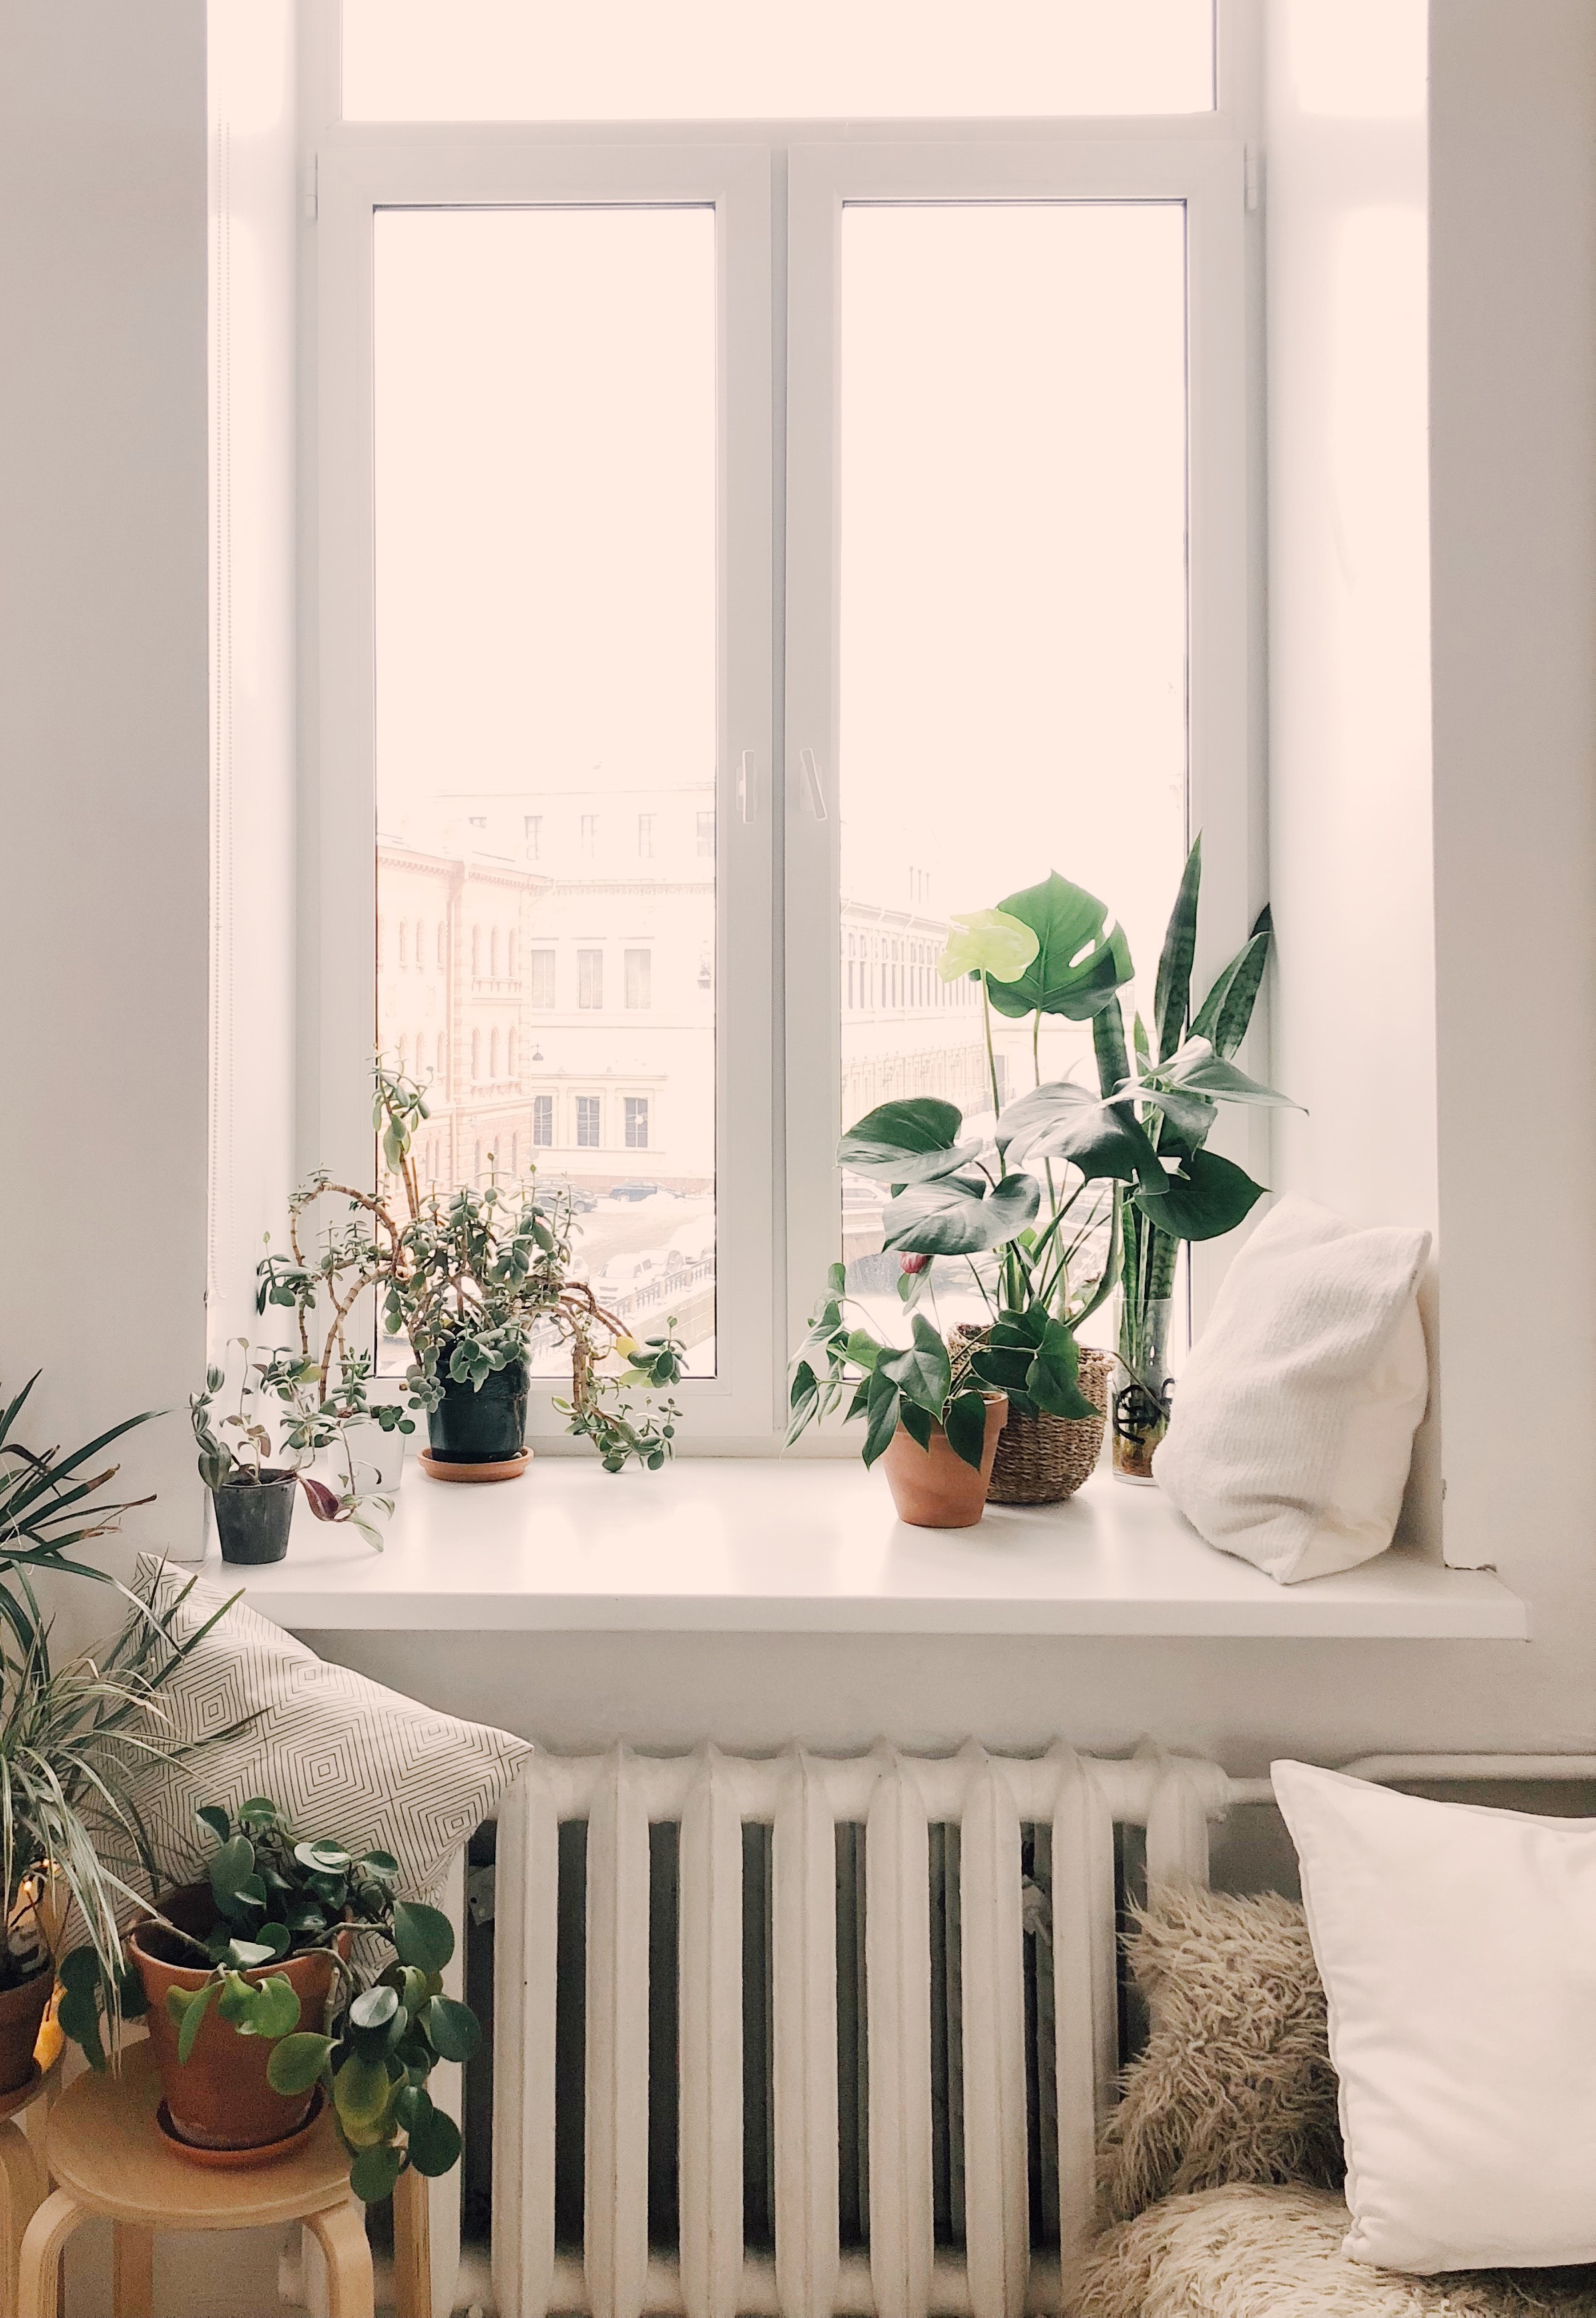 Window surrounded by plants